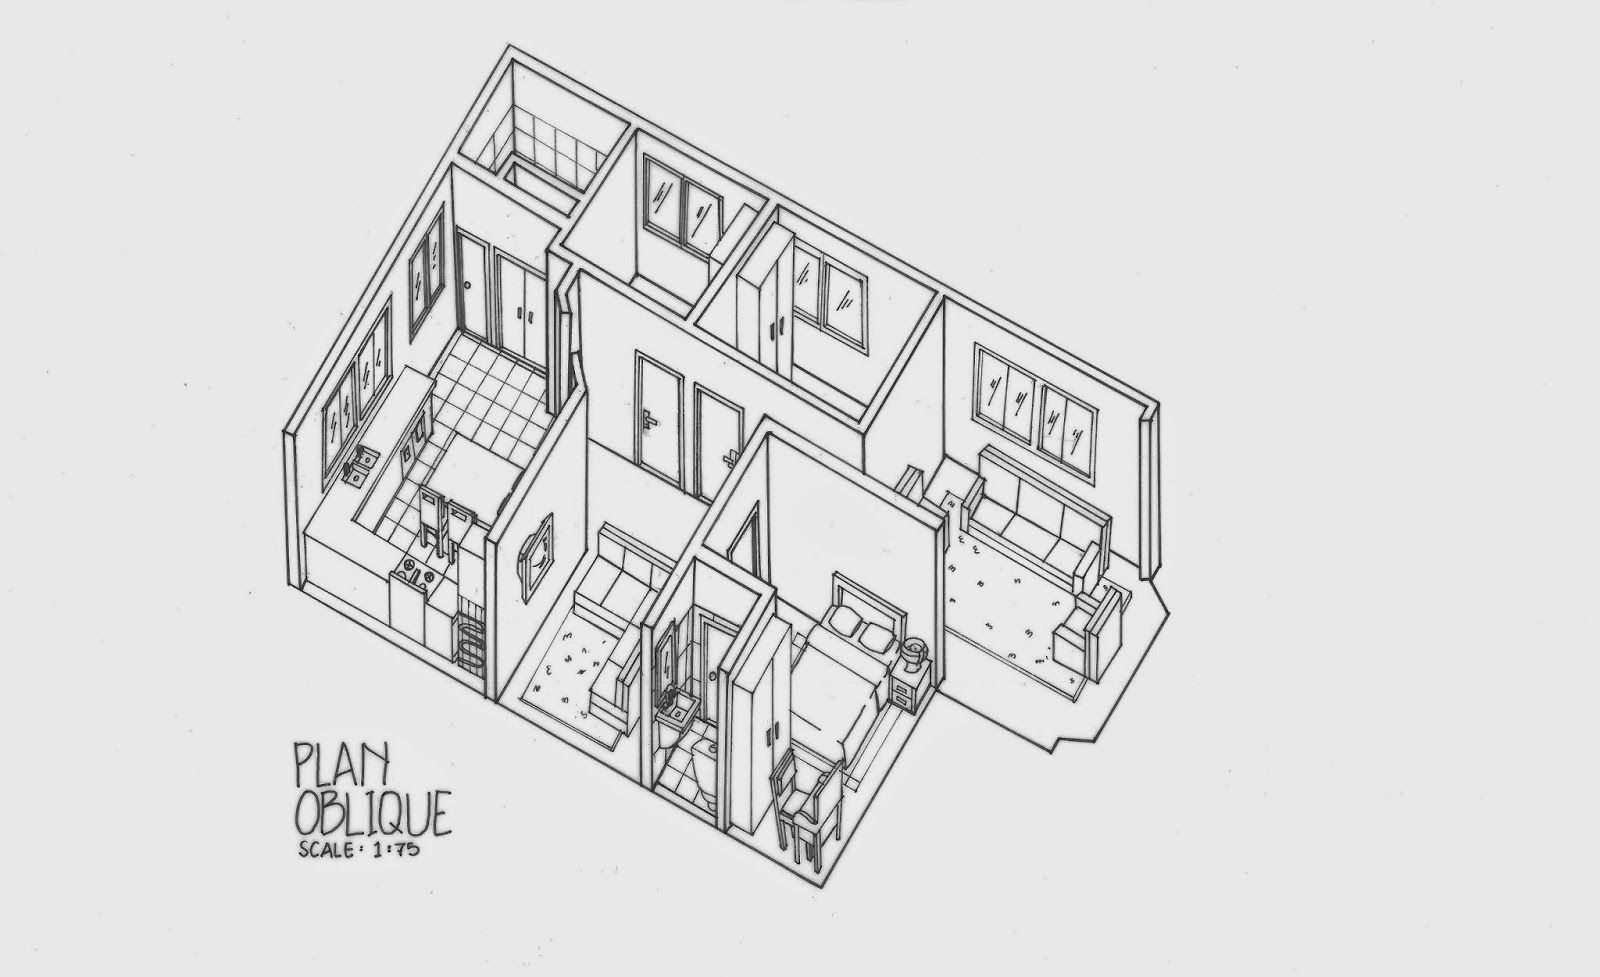 Isometric Building Drawing The Image